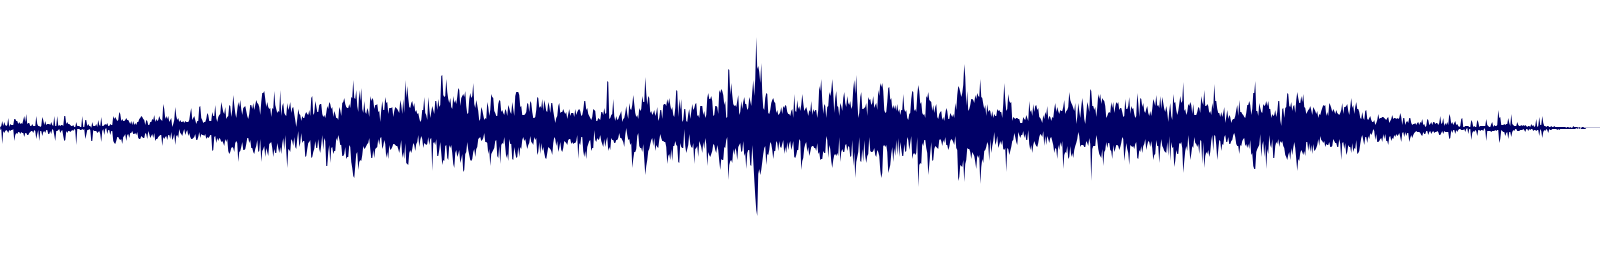 waveform of track #131330